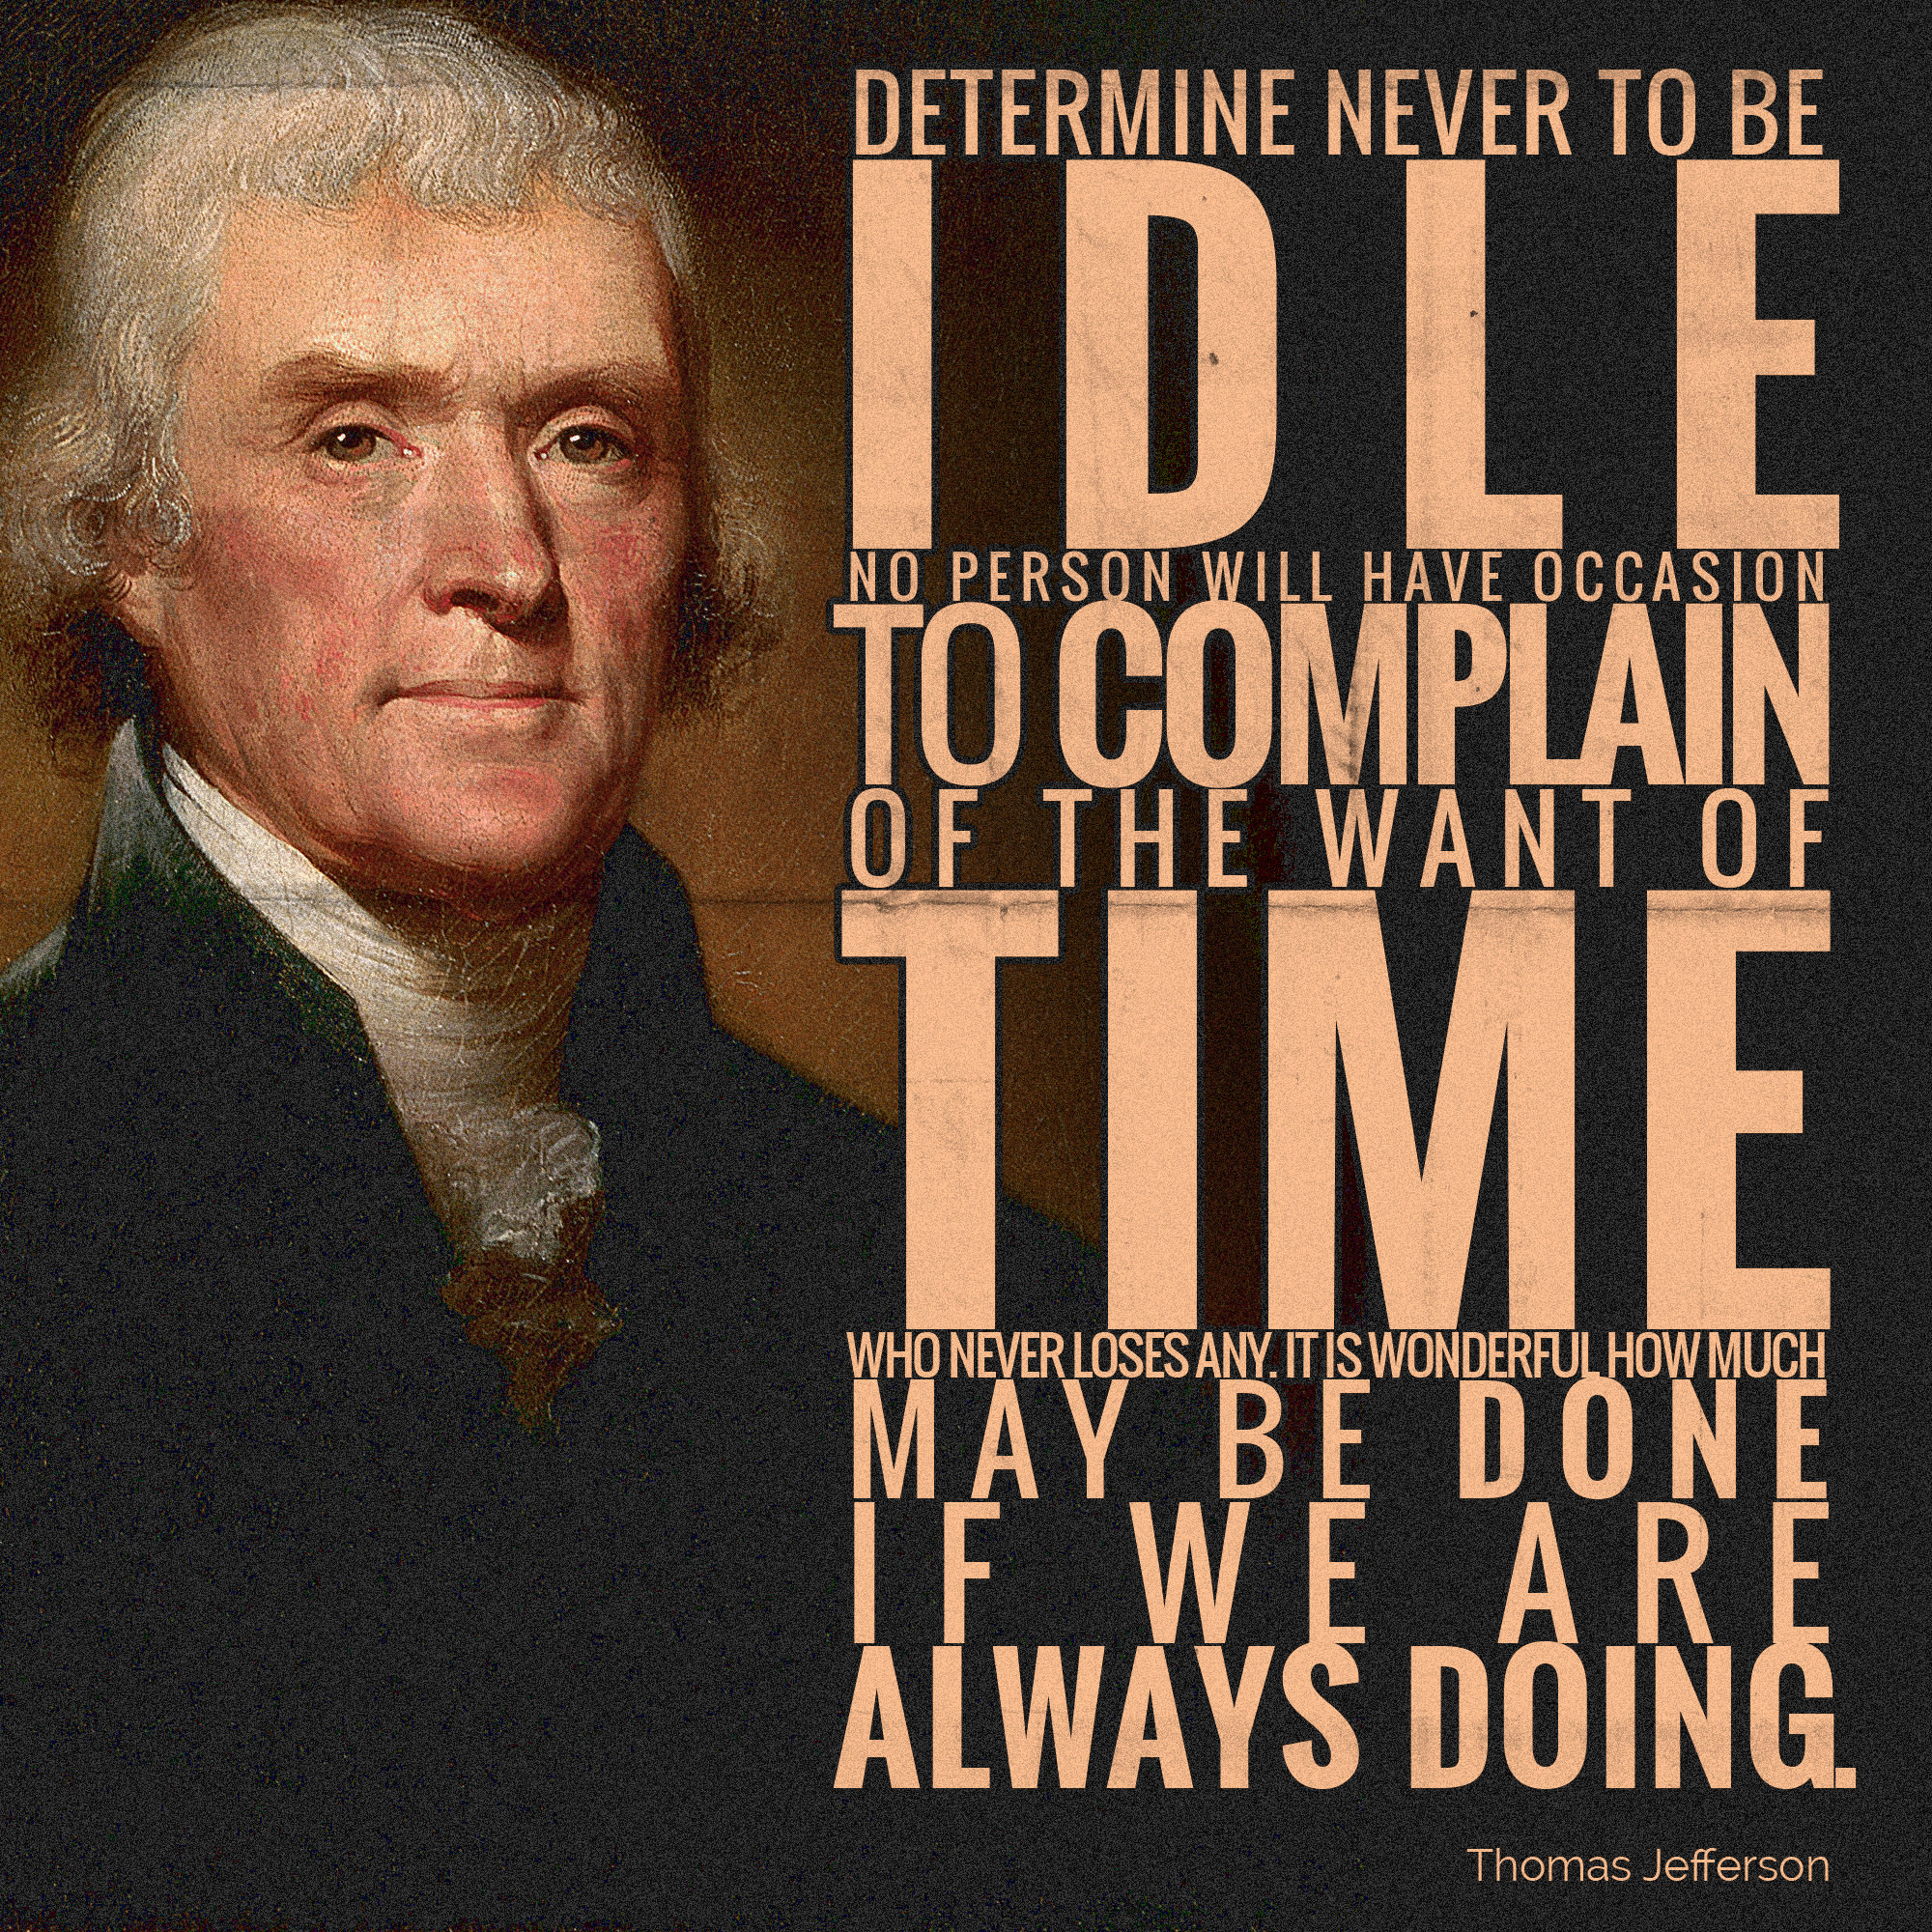 [Image] Determine never to be idle. No person will have occasion to complain of the want of time who never loses any. It is wonderful how much may be done if we are always doing.